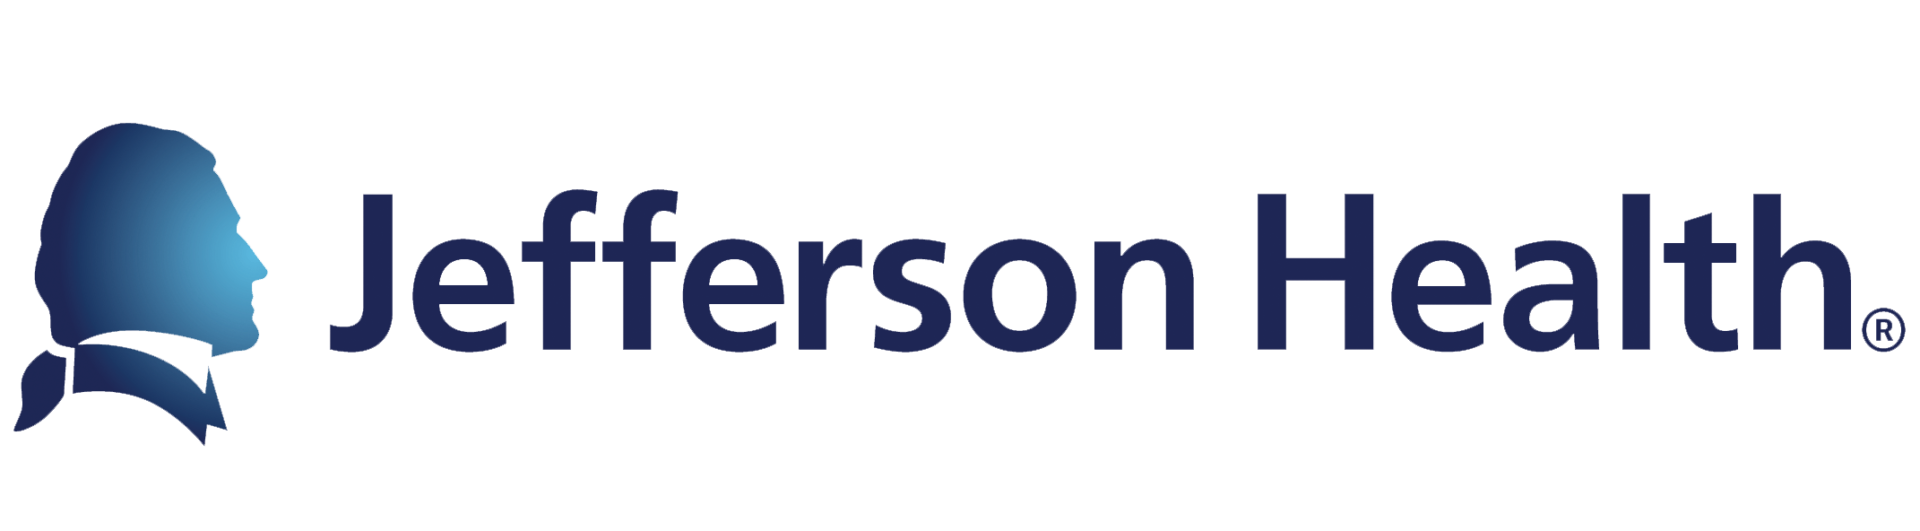 Jefferson Health is in an imaging center joint venture with OIA for Diagnostic Center Development